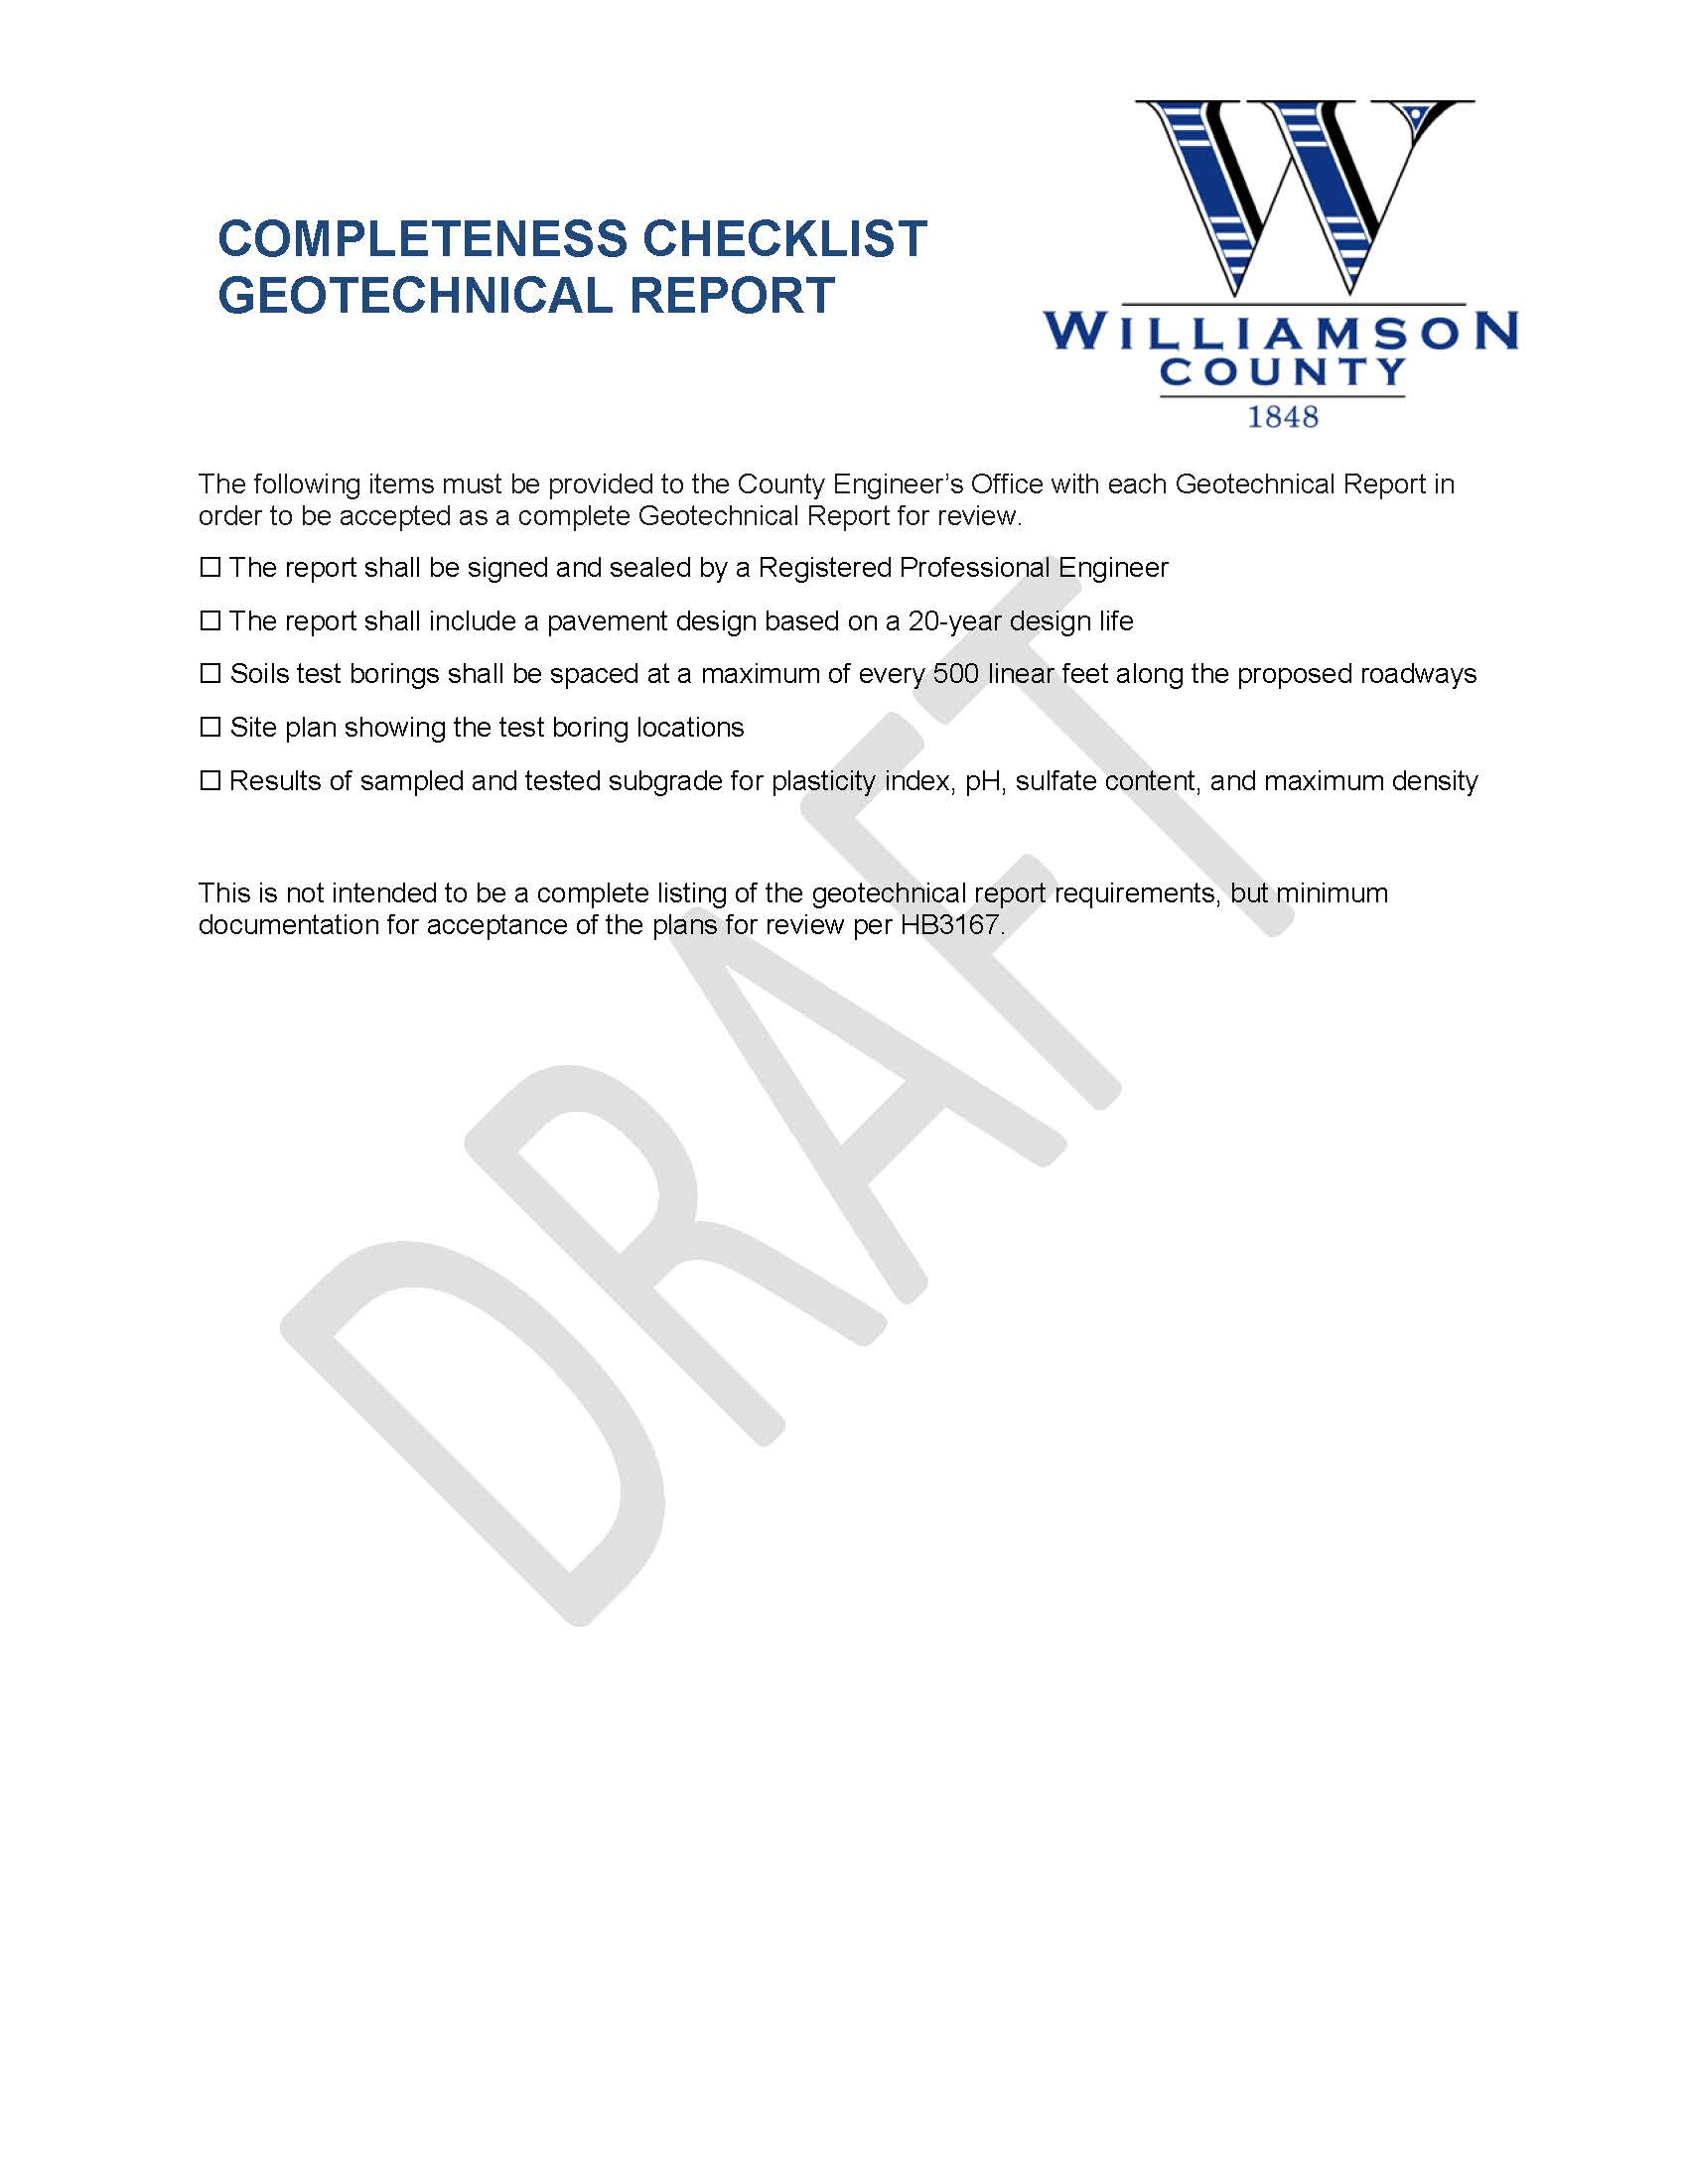 Application for Geotechnical Report